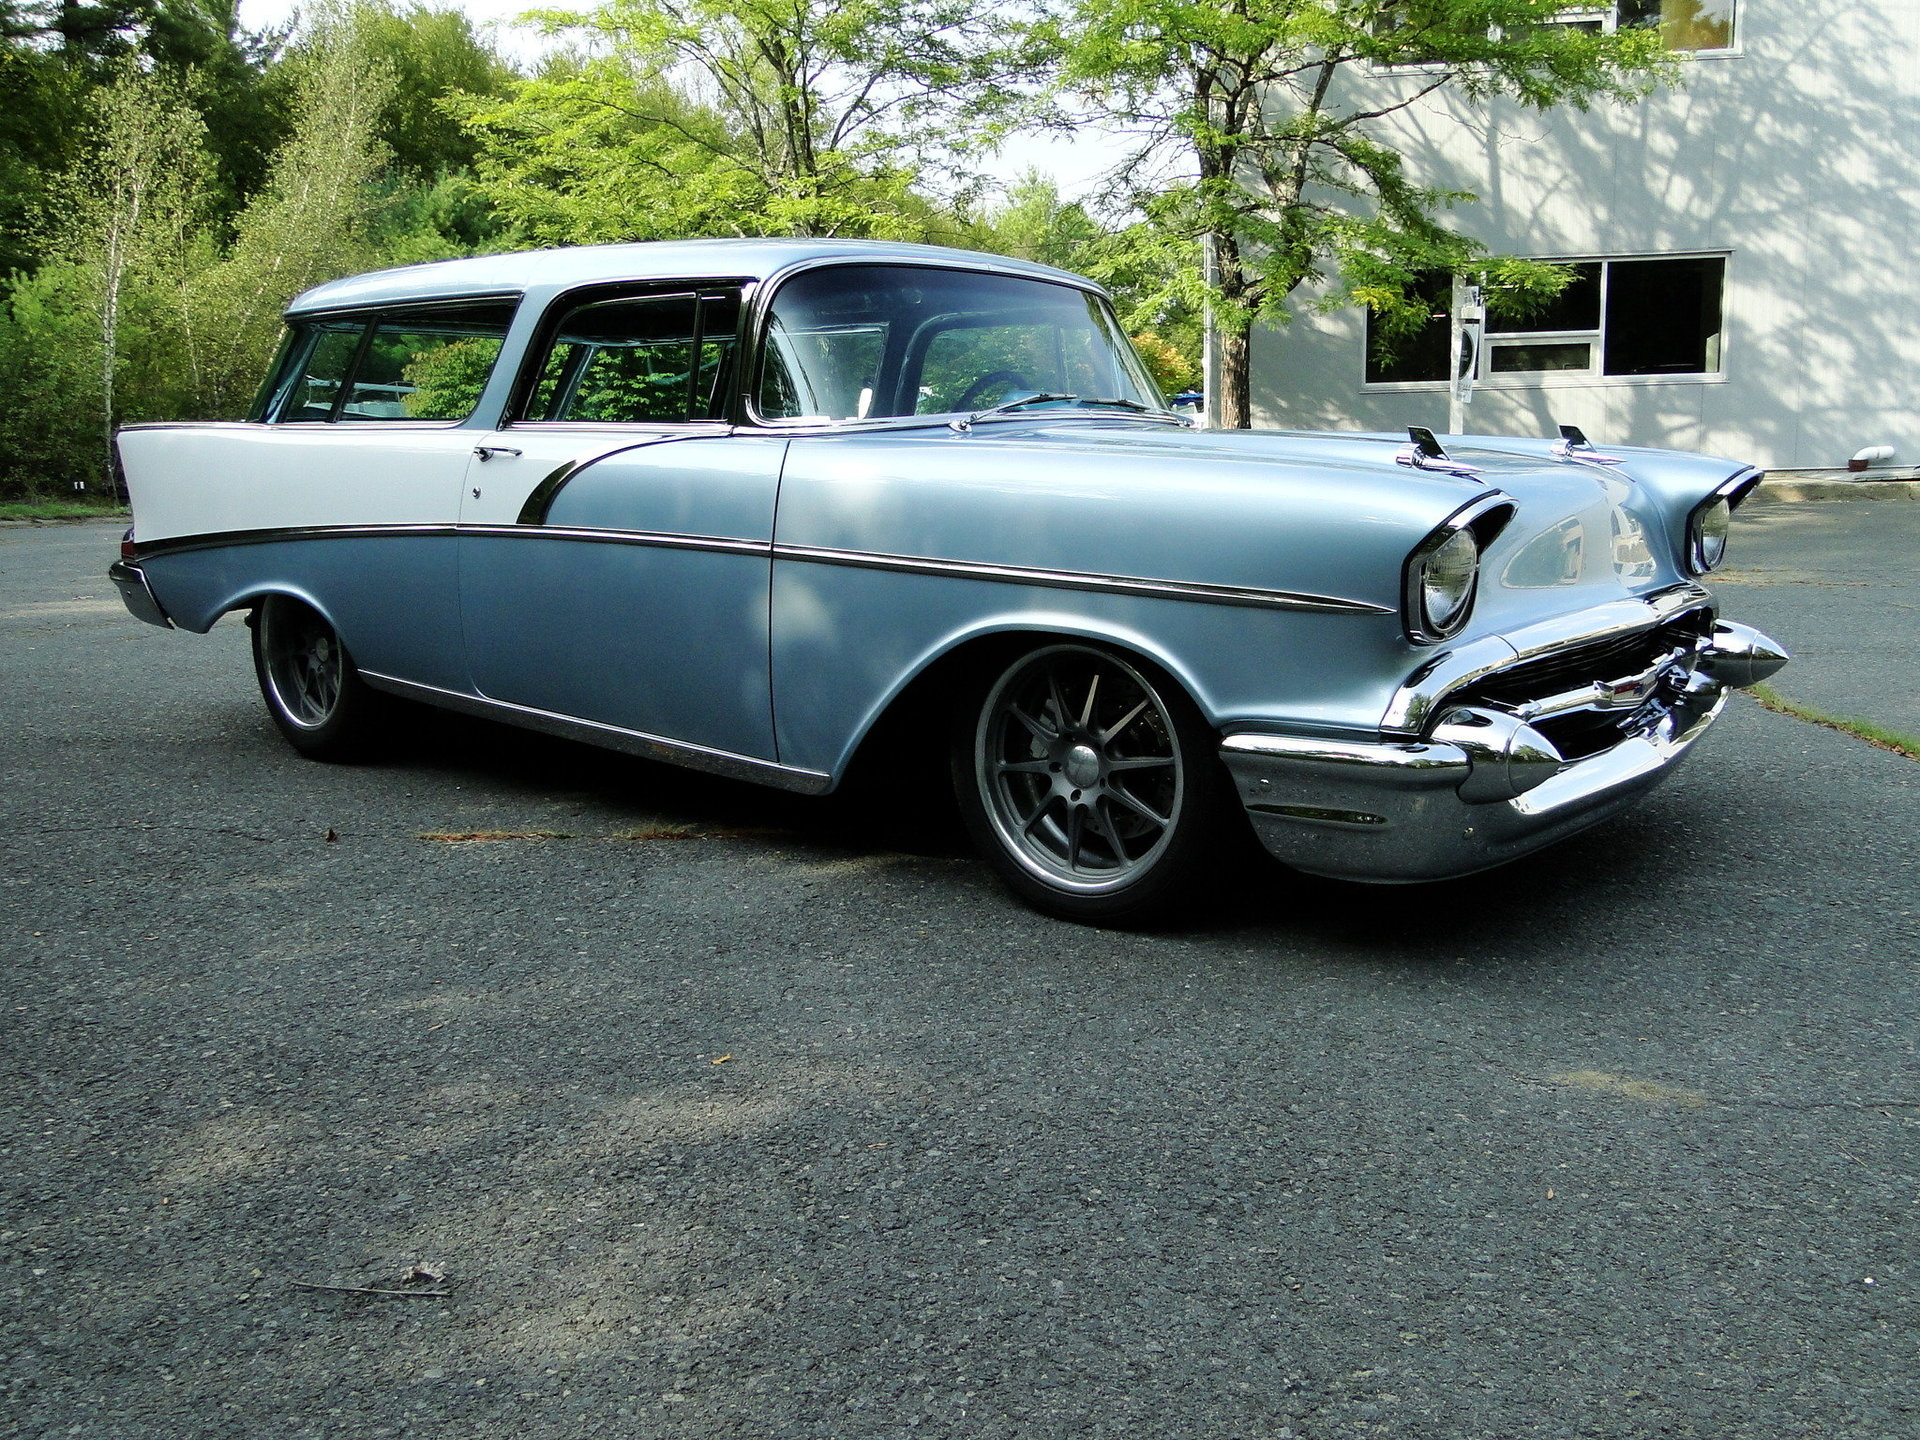 1957 Chevrolet Nomad For Sale 74493 Mcg Chevy Wagon